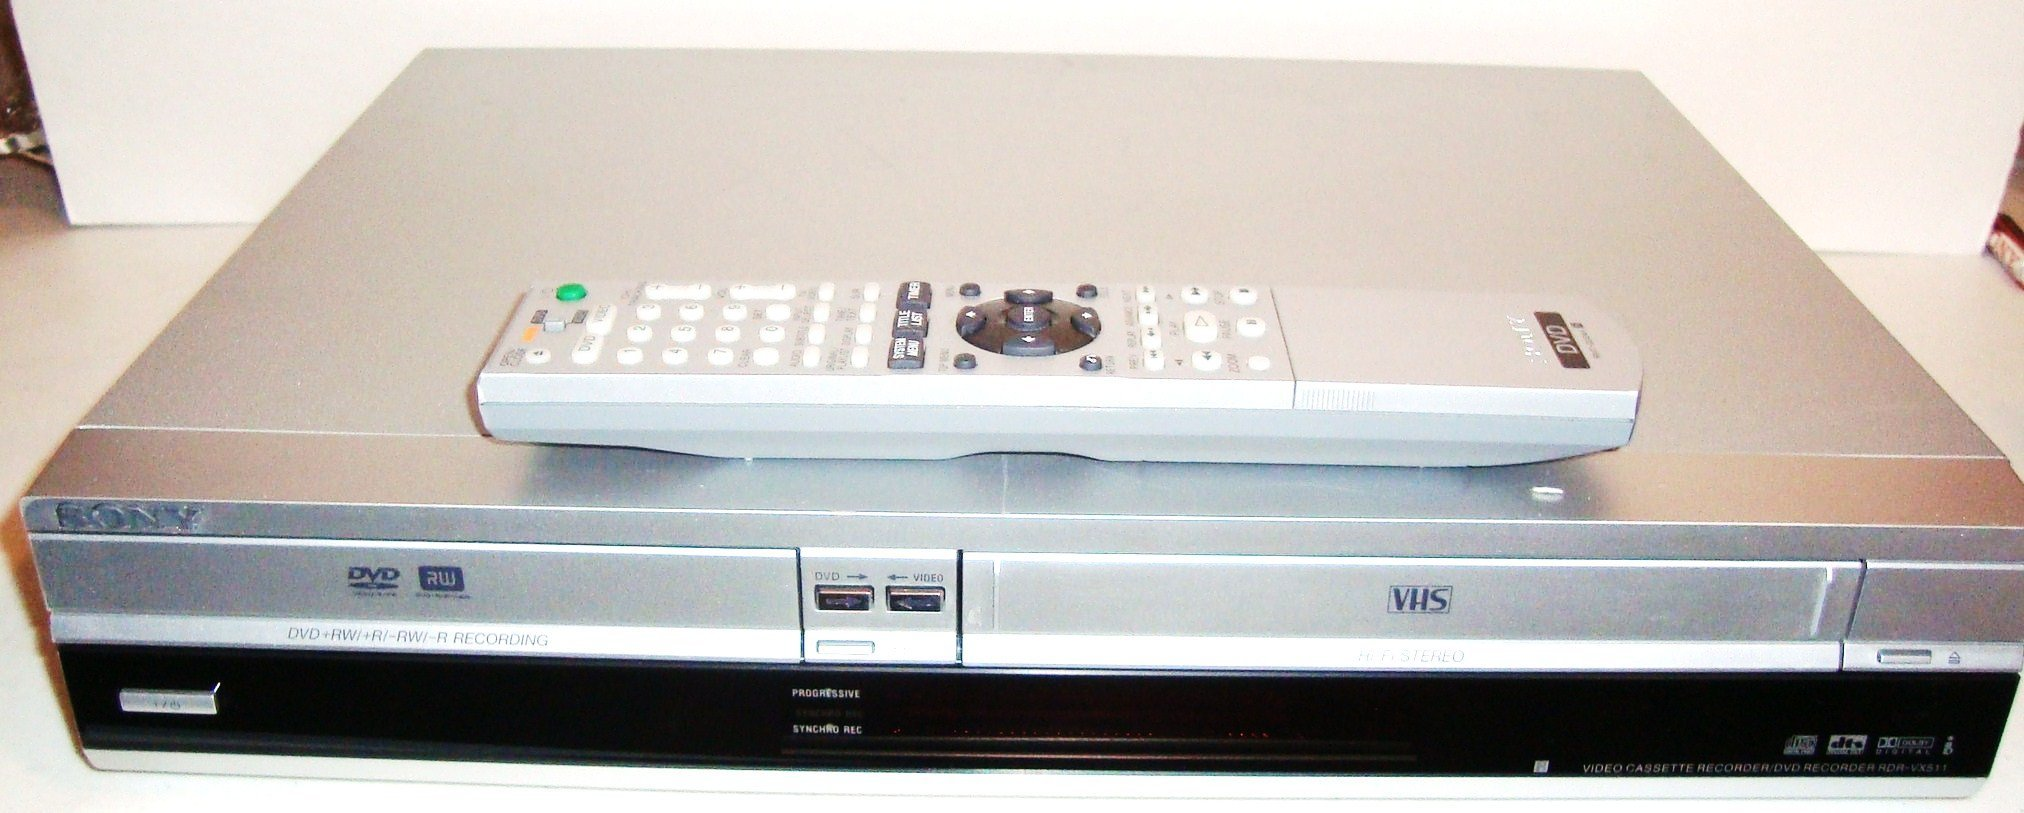 Get Quotations · Sony RDR-VX511 DVD Player/Recorder Combo with VCR